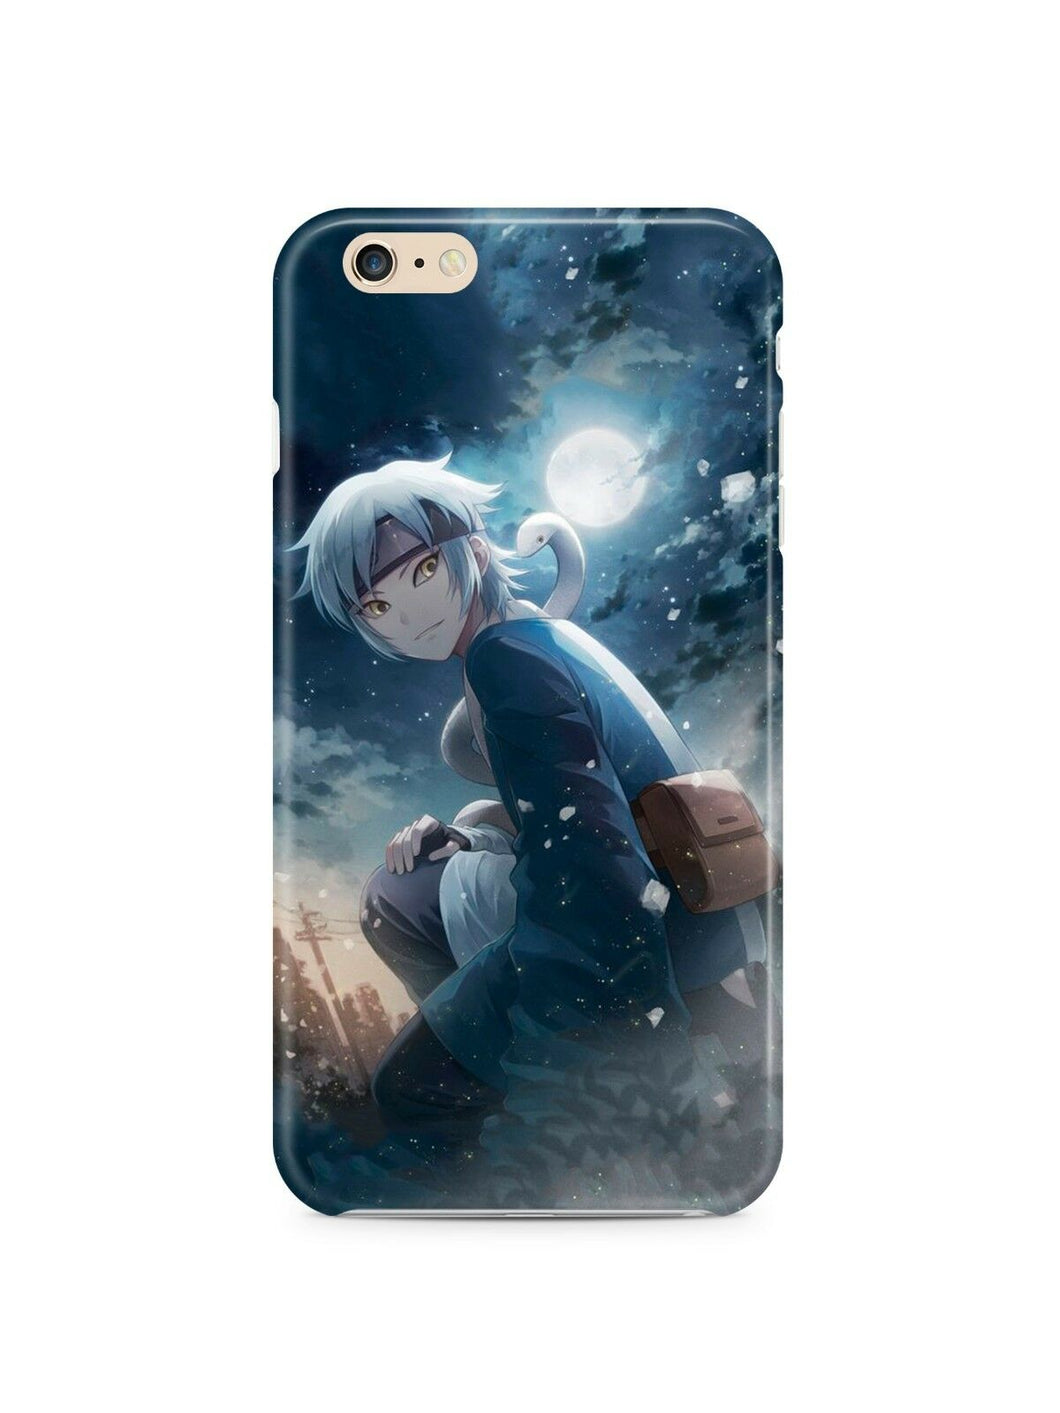 Boruto Next Generations Iphone 4s 5s 5c SE 6 6s 7 8 X XS Max XR Plus Case 11